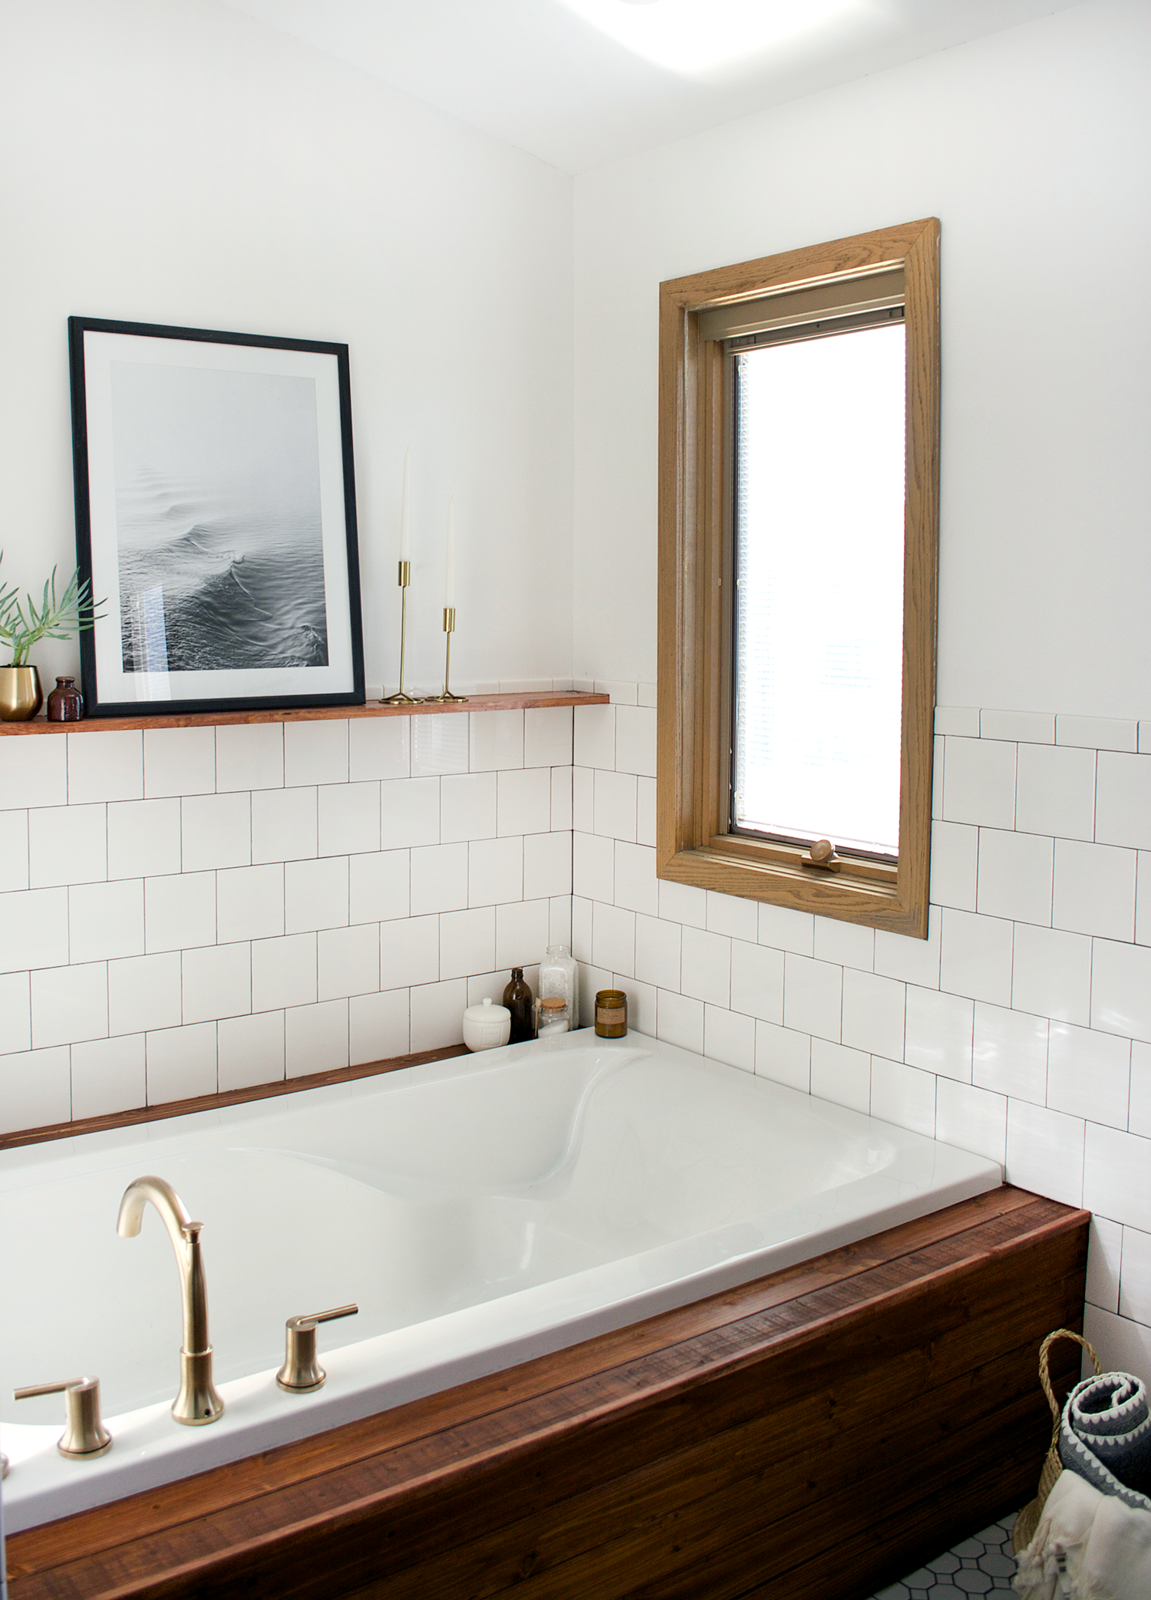 Photo 6 of 11 in Before & After: An Outdated Bathroom Gets a ...